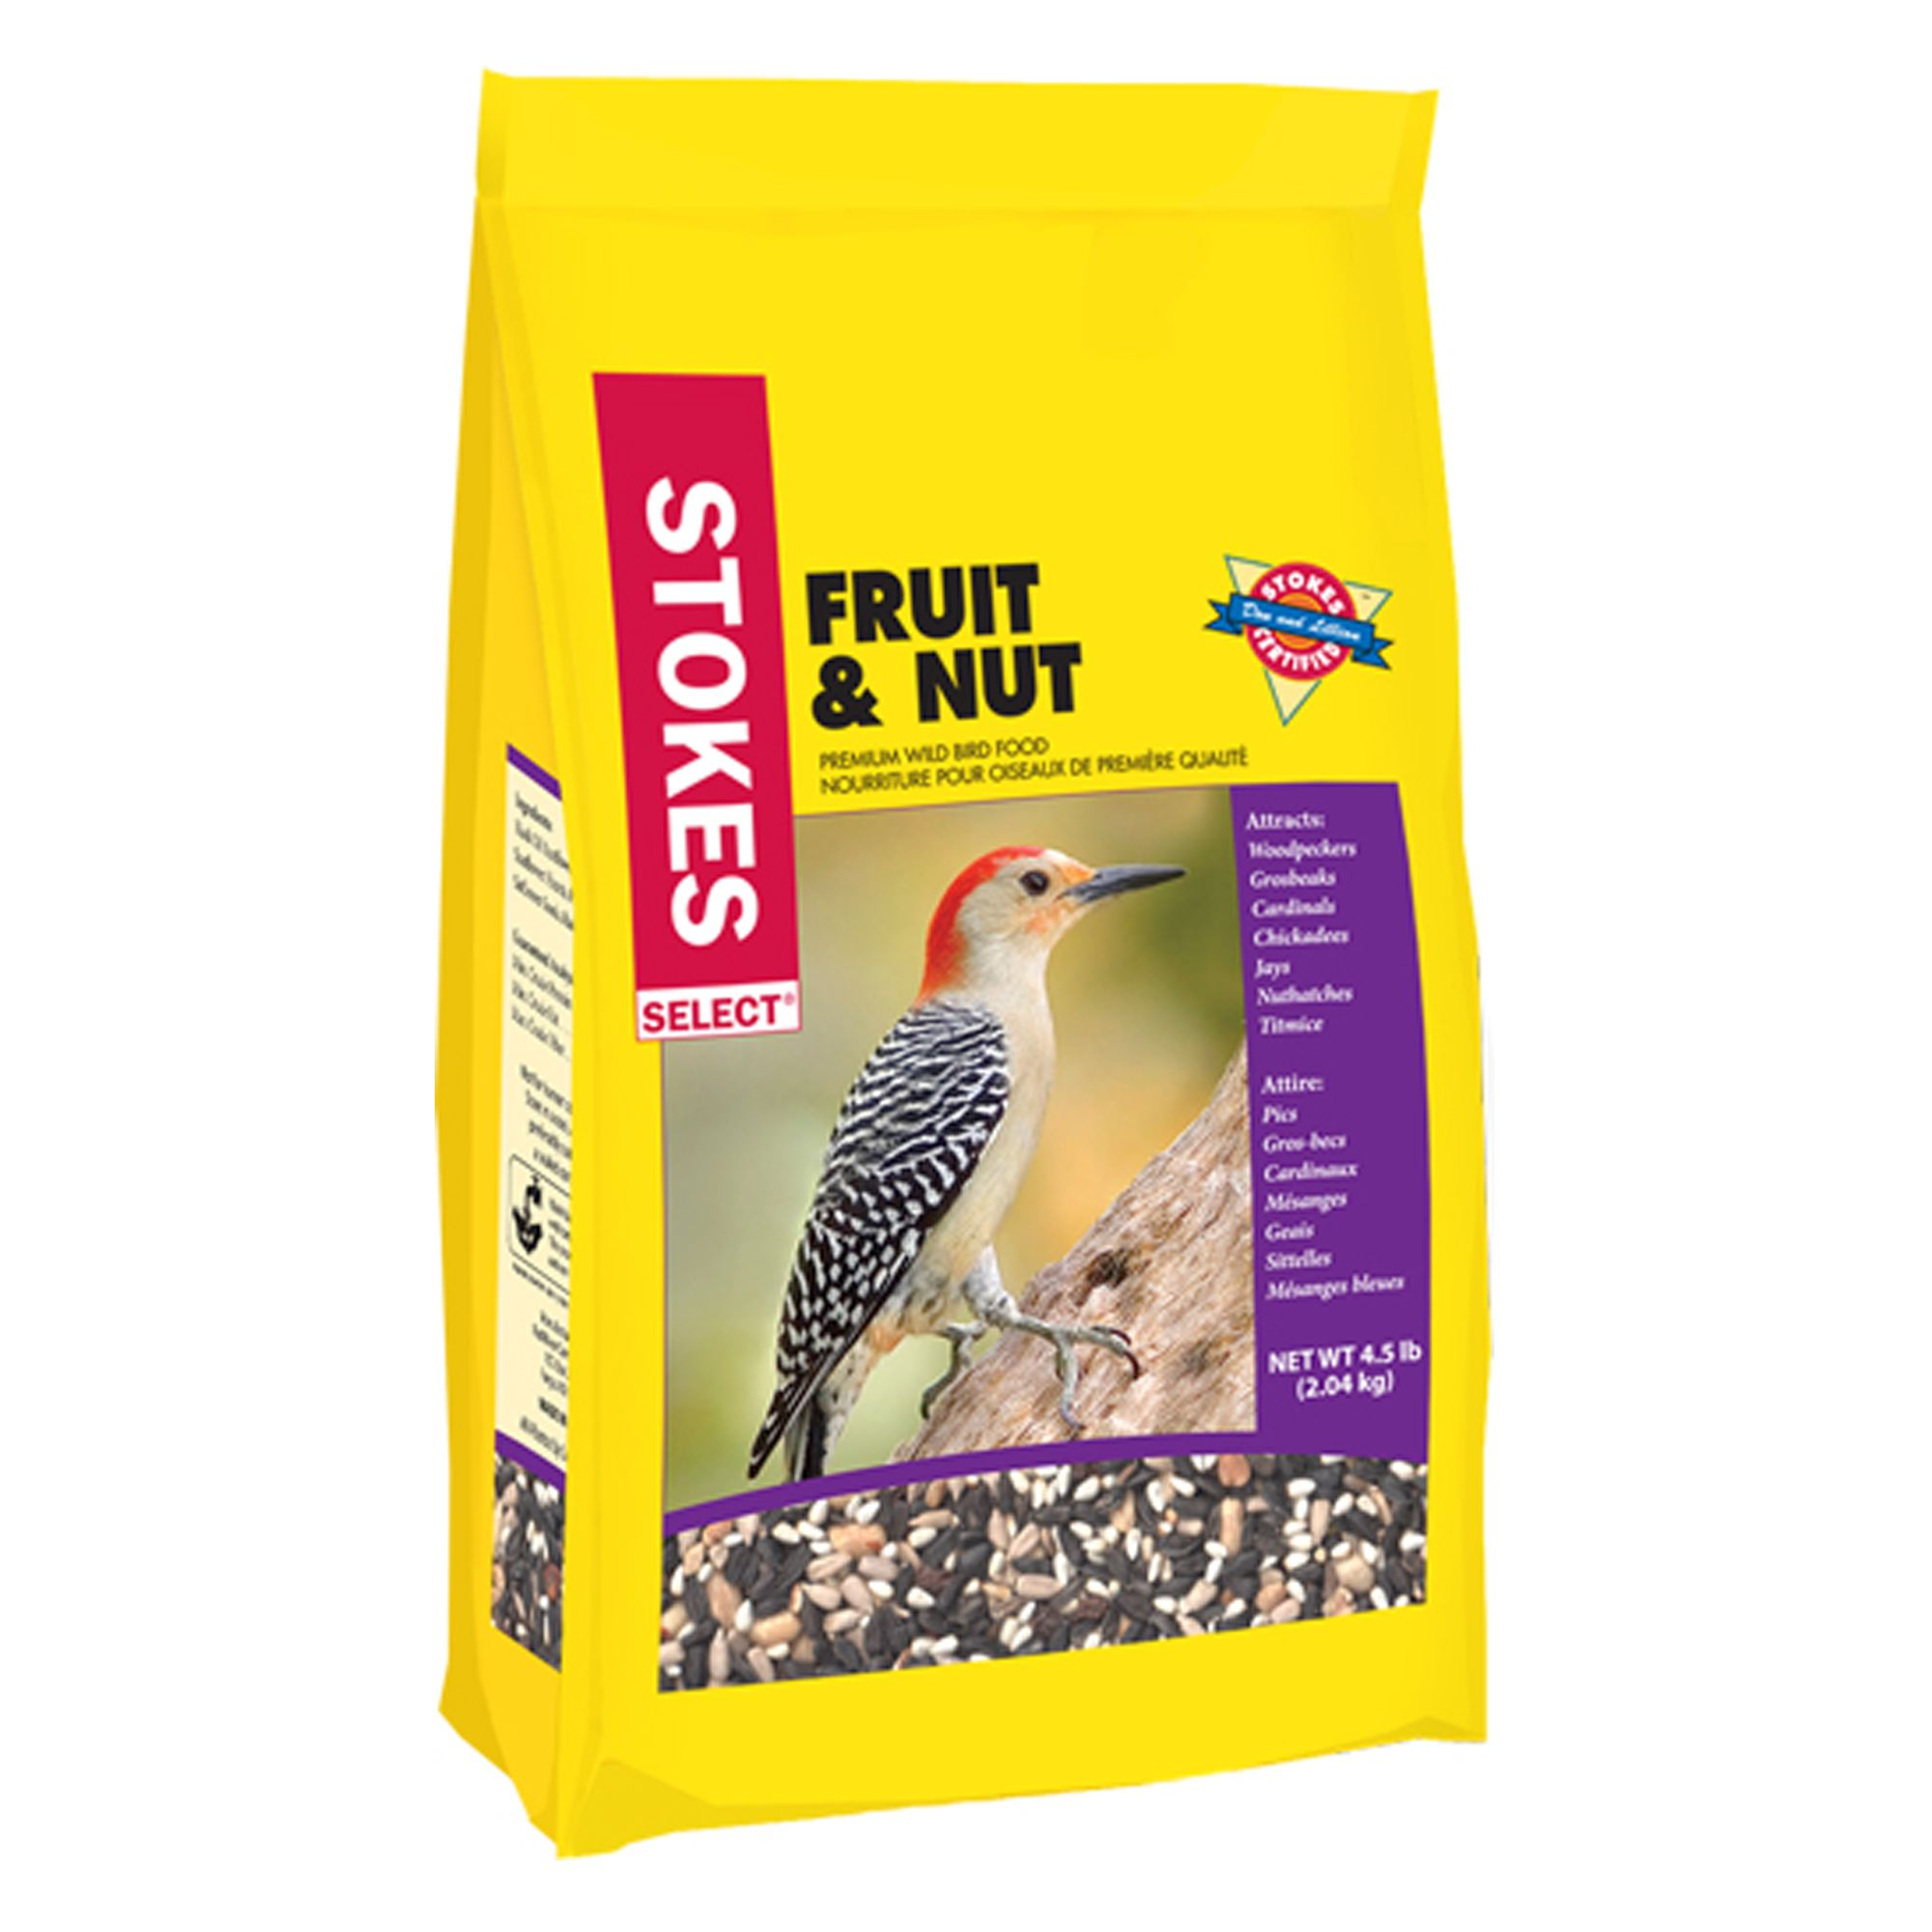 Stokes Select Fruit And Nut Wild Bird Feed